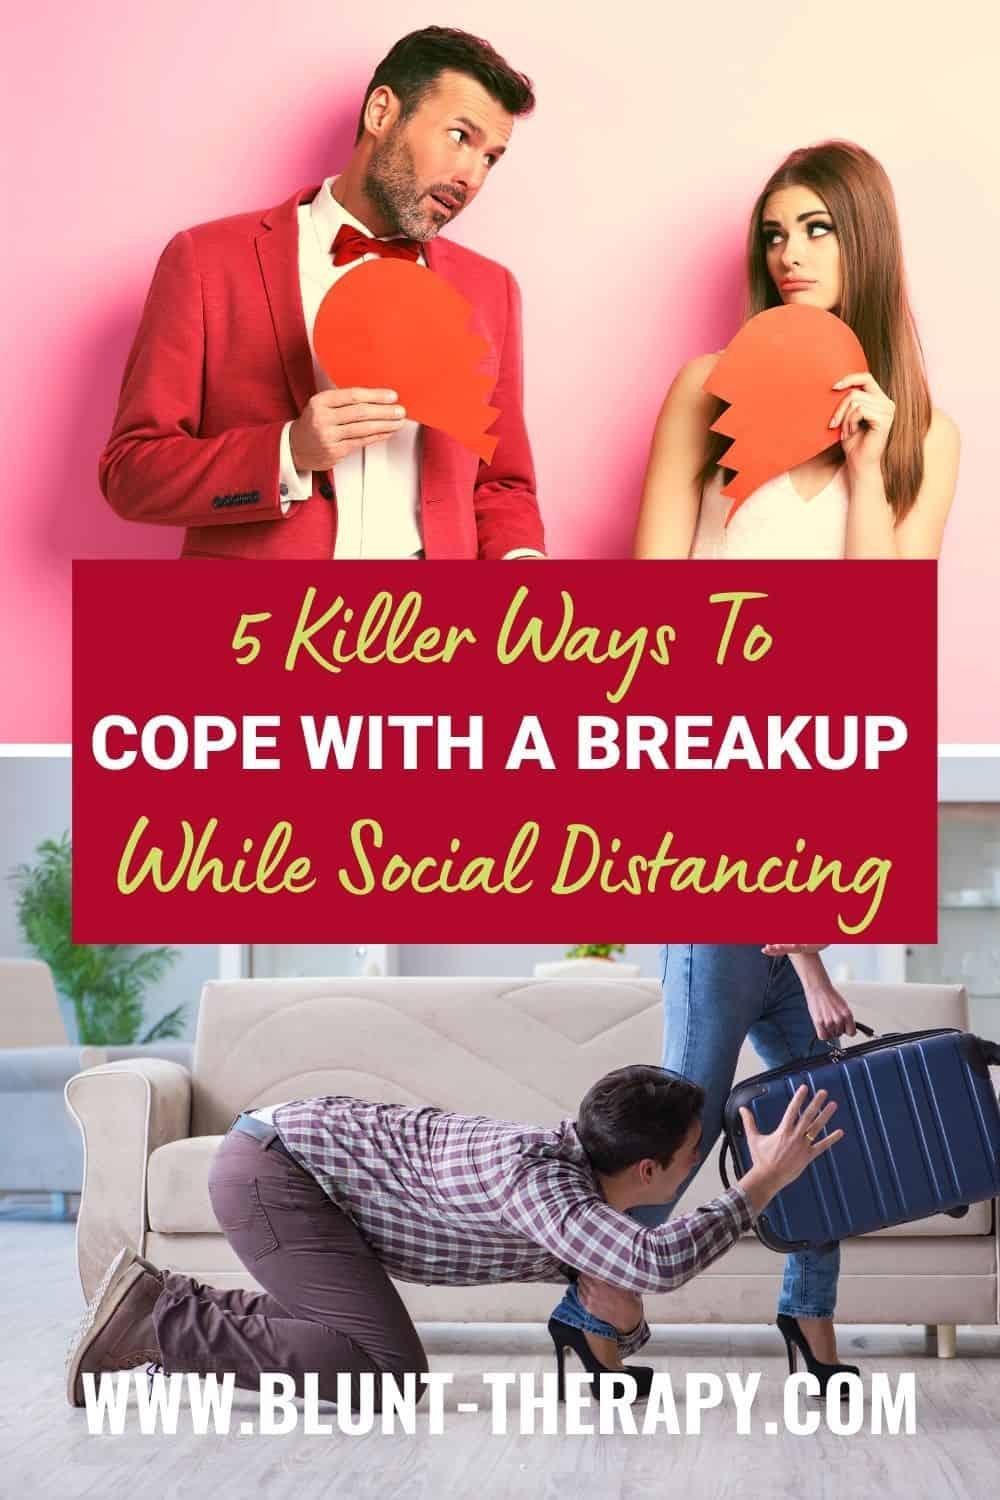 5 Killer Ways To Cope With a Breakup While Social Distancing